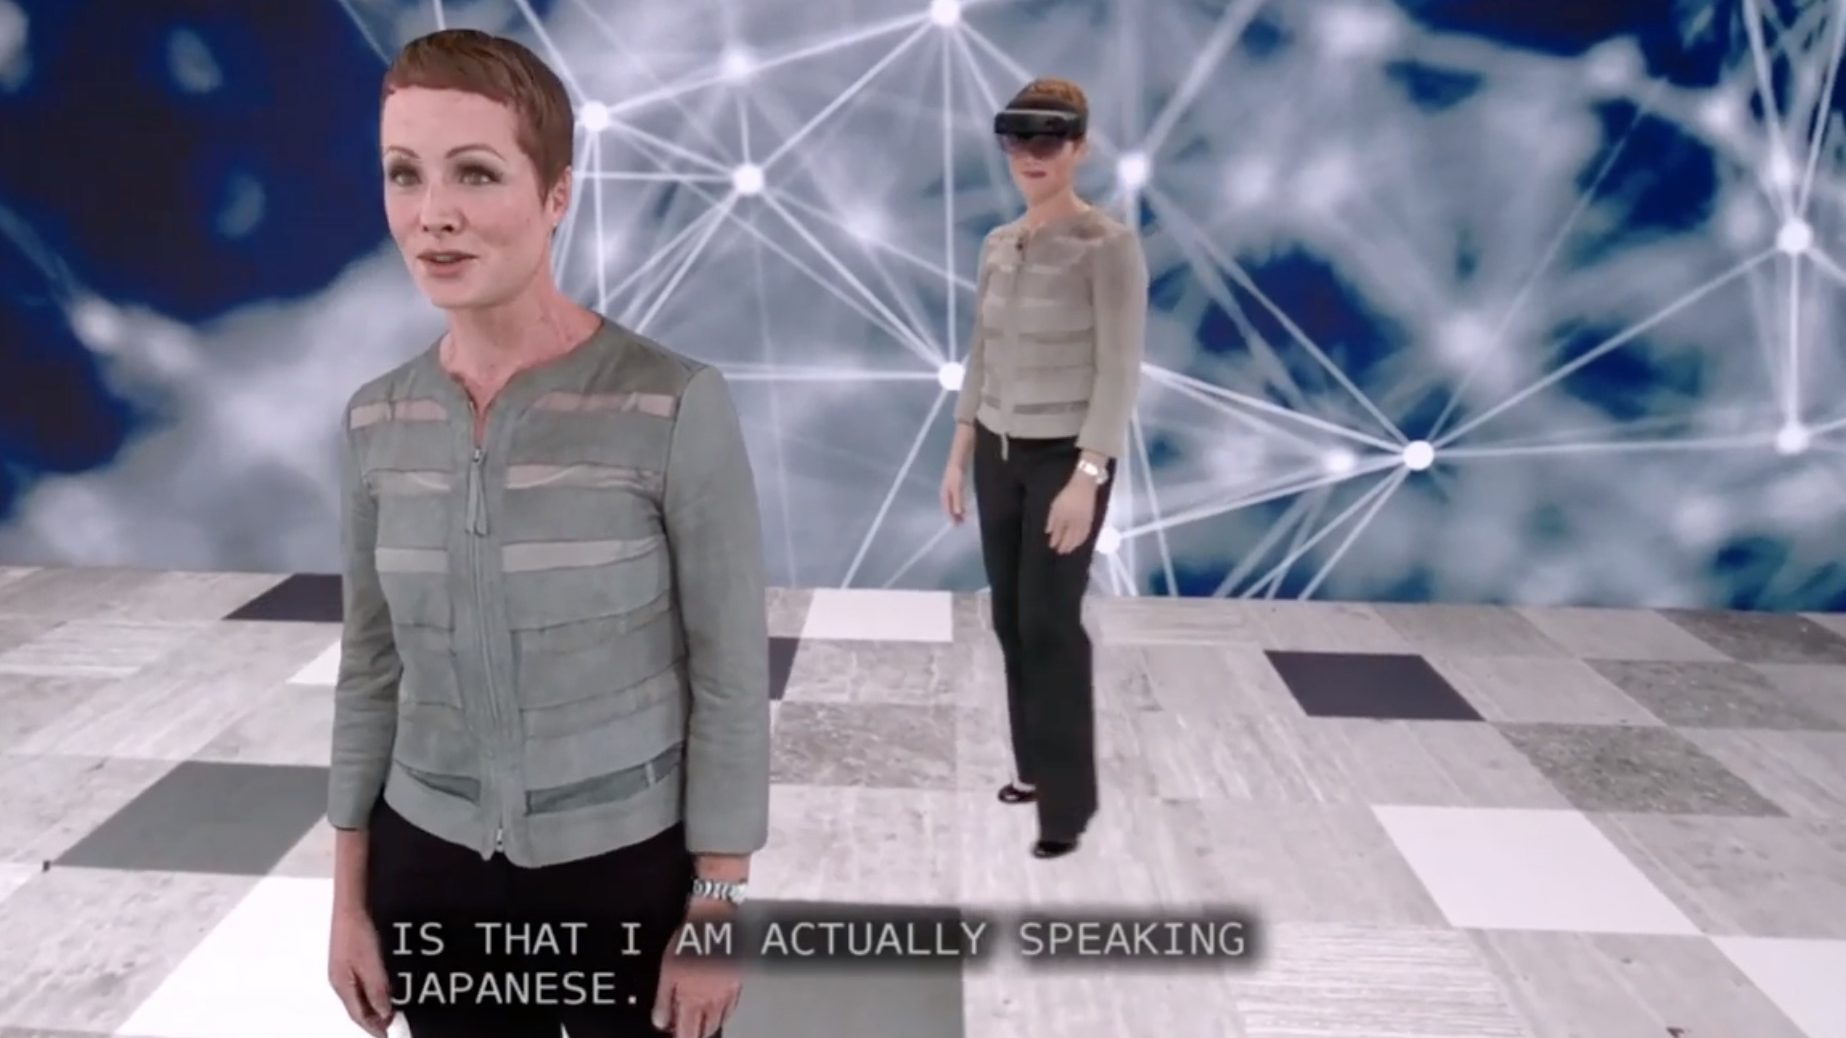 Image result for microsoft hologram speaks foreign language